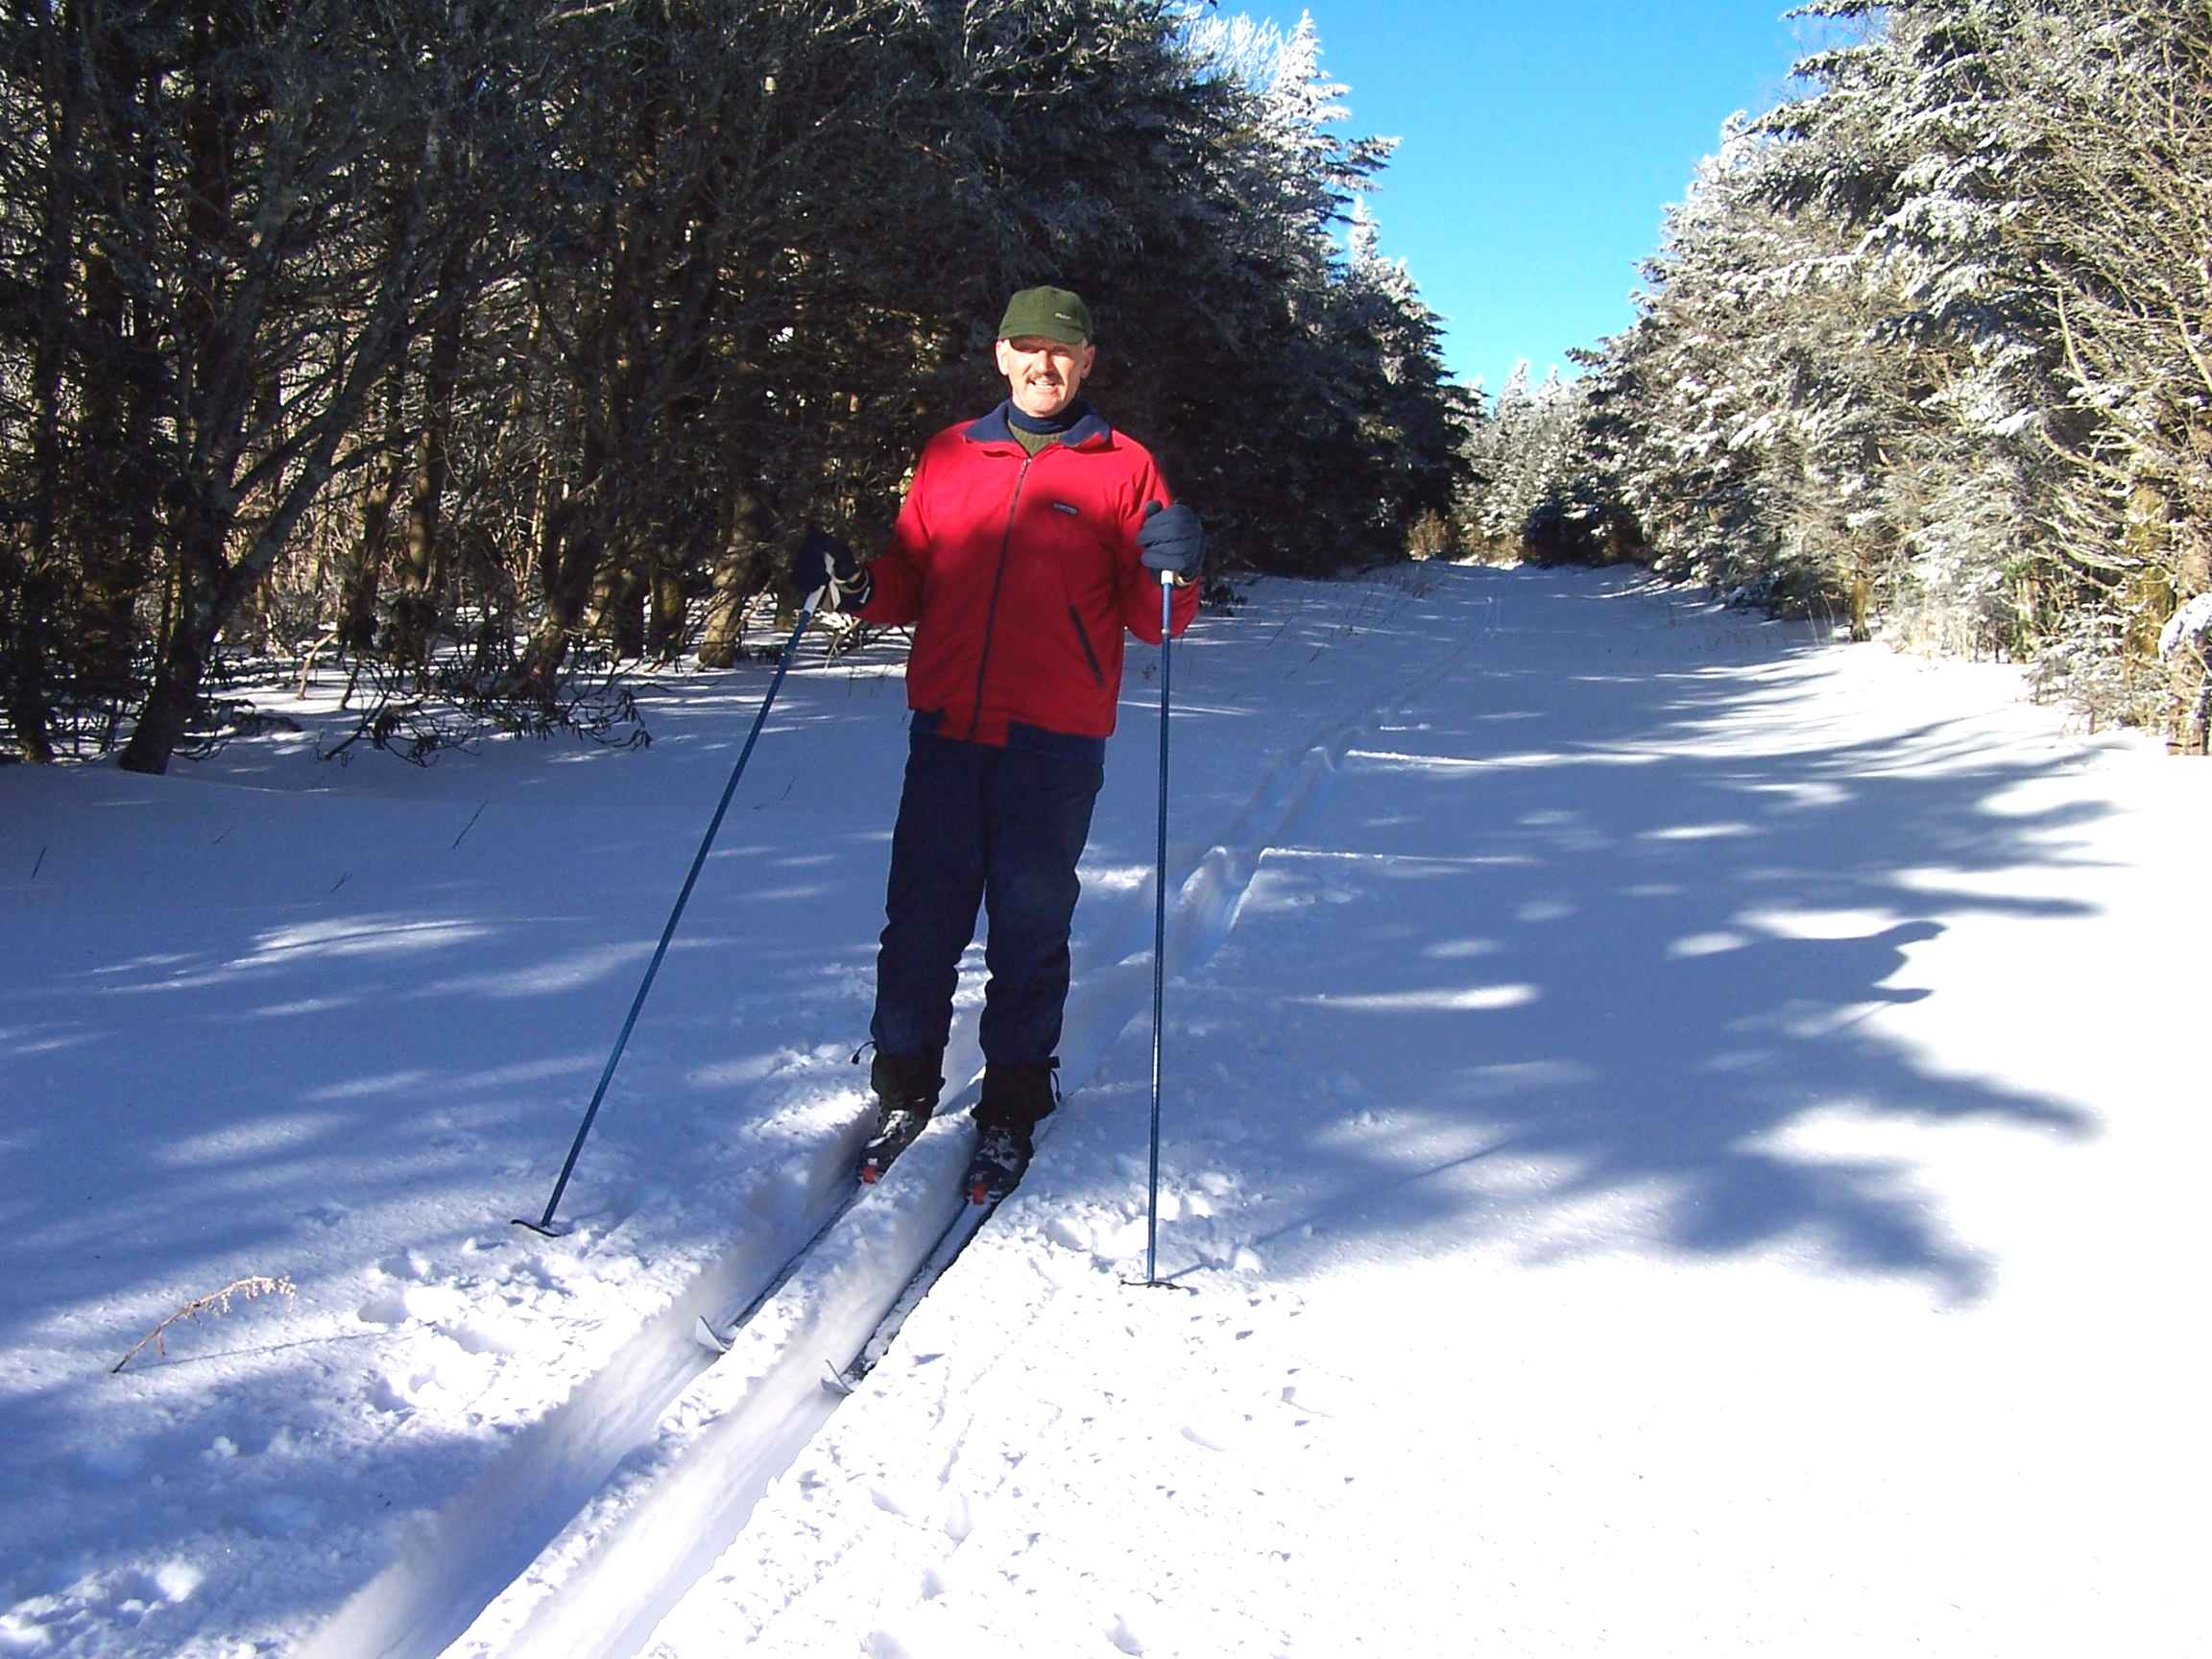 Cross-country skiing on top of Roan Mountain, 6,000 + feet elevation.